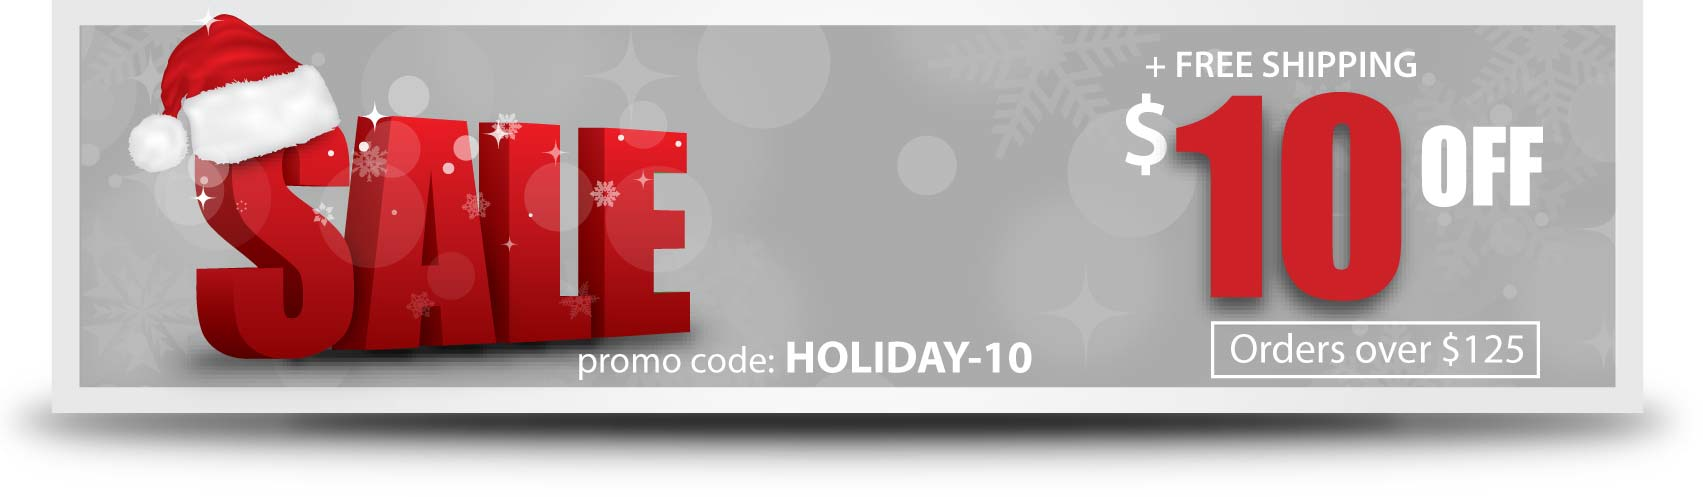 Holiday Sale $10 OFF orders over $125 through Dec 31, 2018